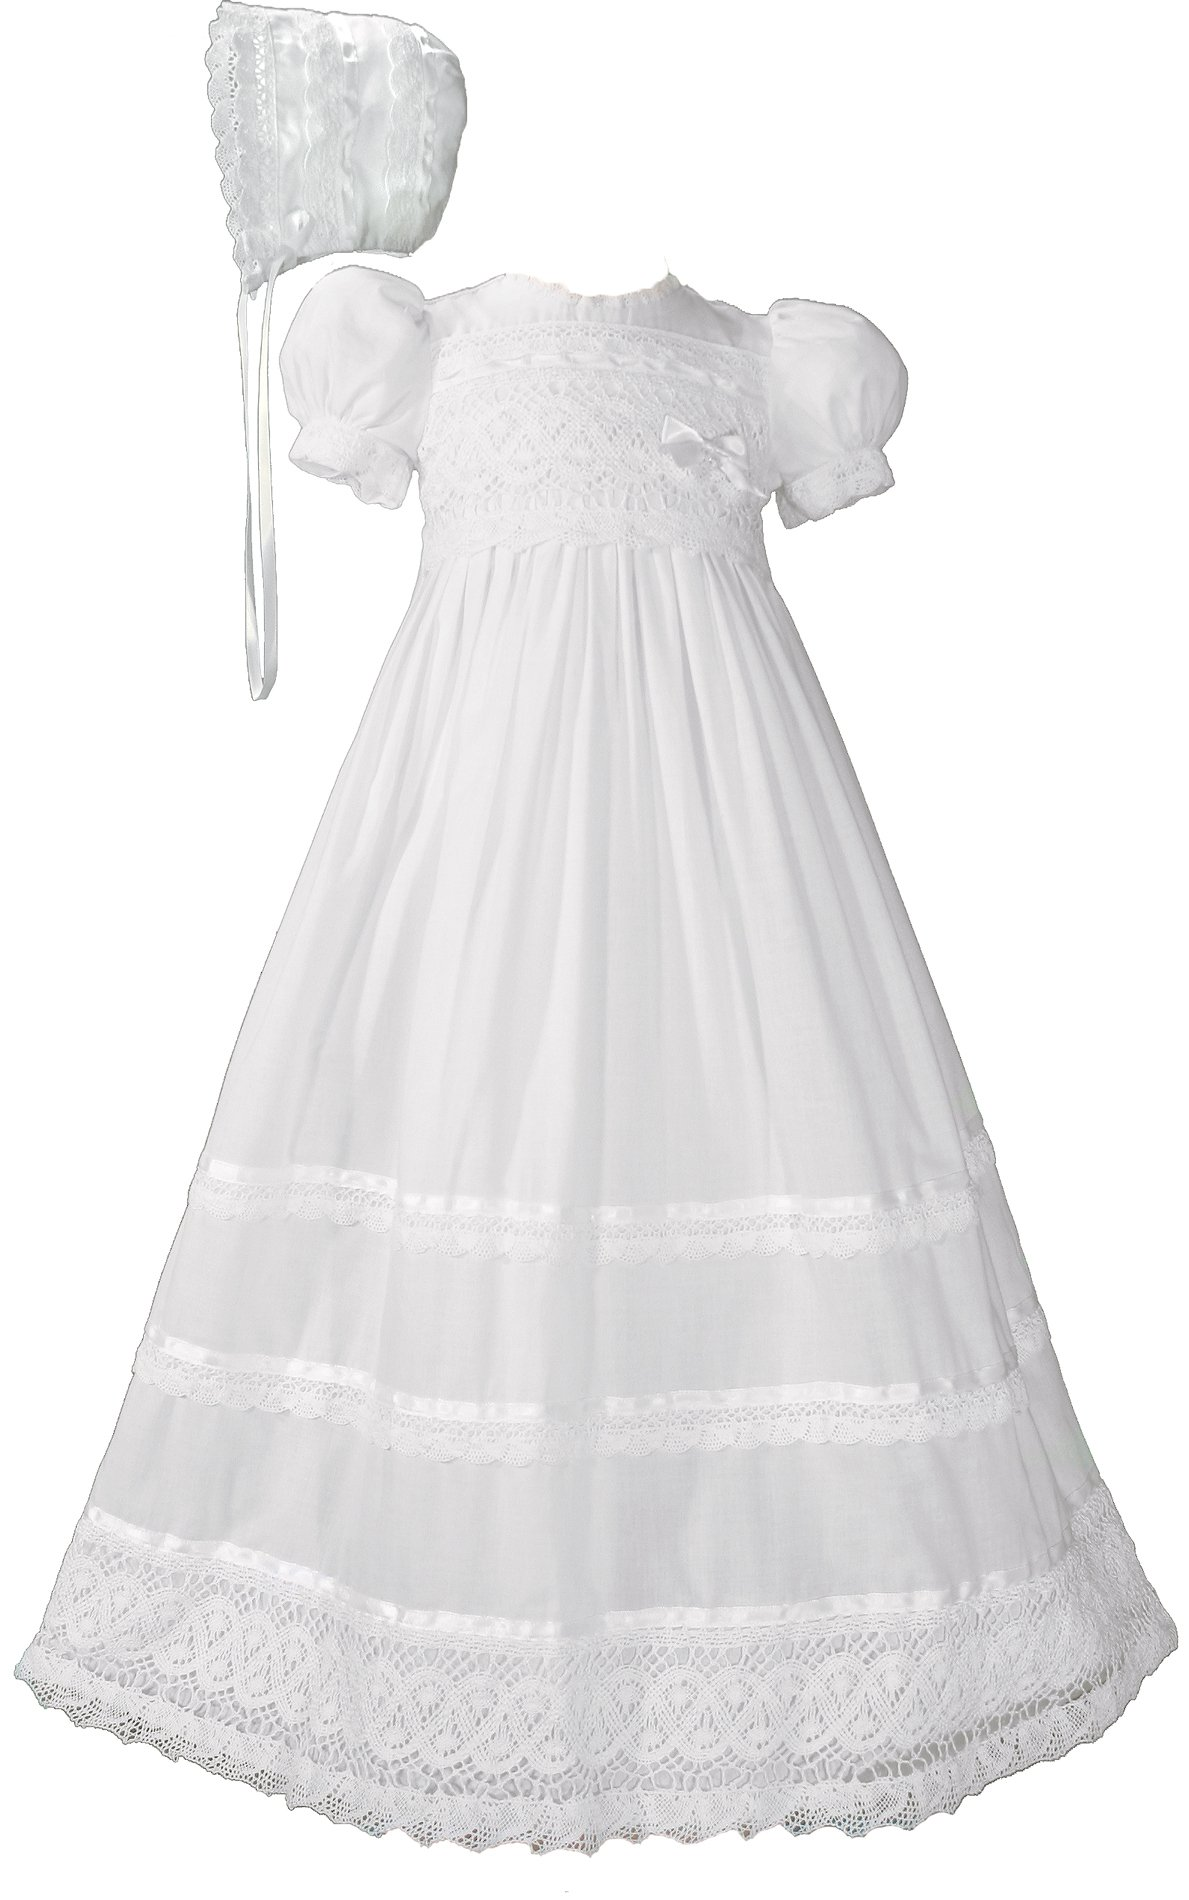 Girls Cotton Short Sleeve Dress Christening Gown Baptism Gown with Laces and Ribbon 24M